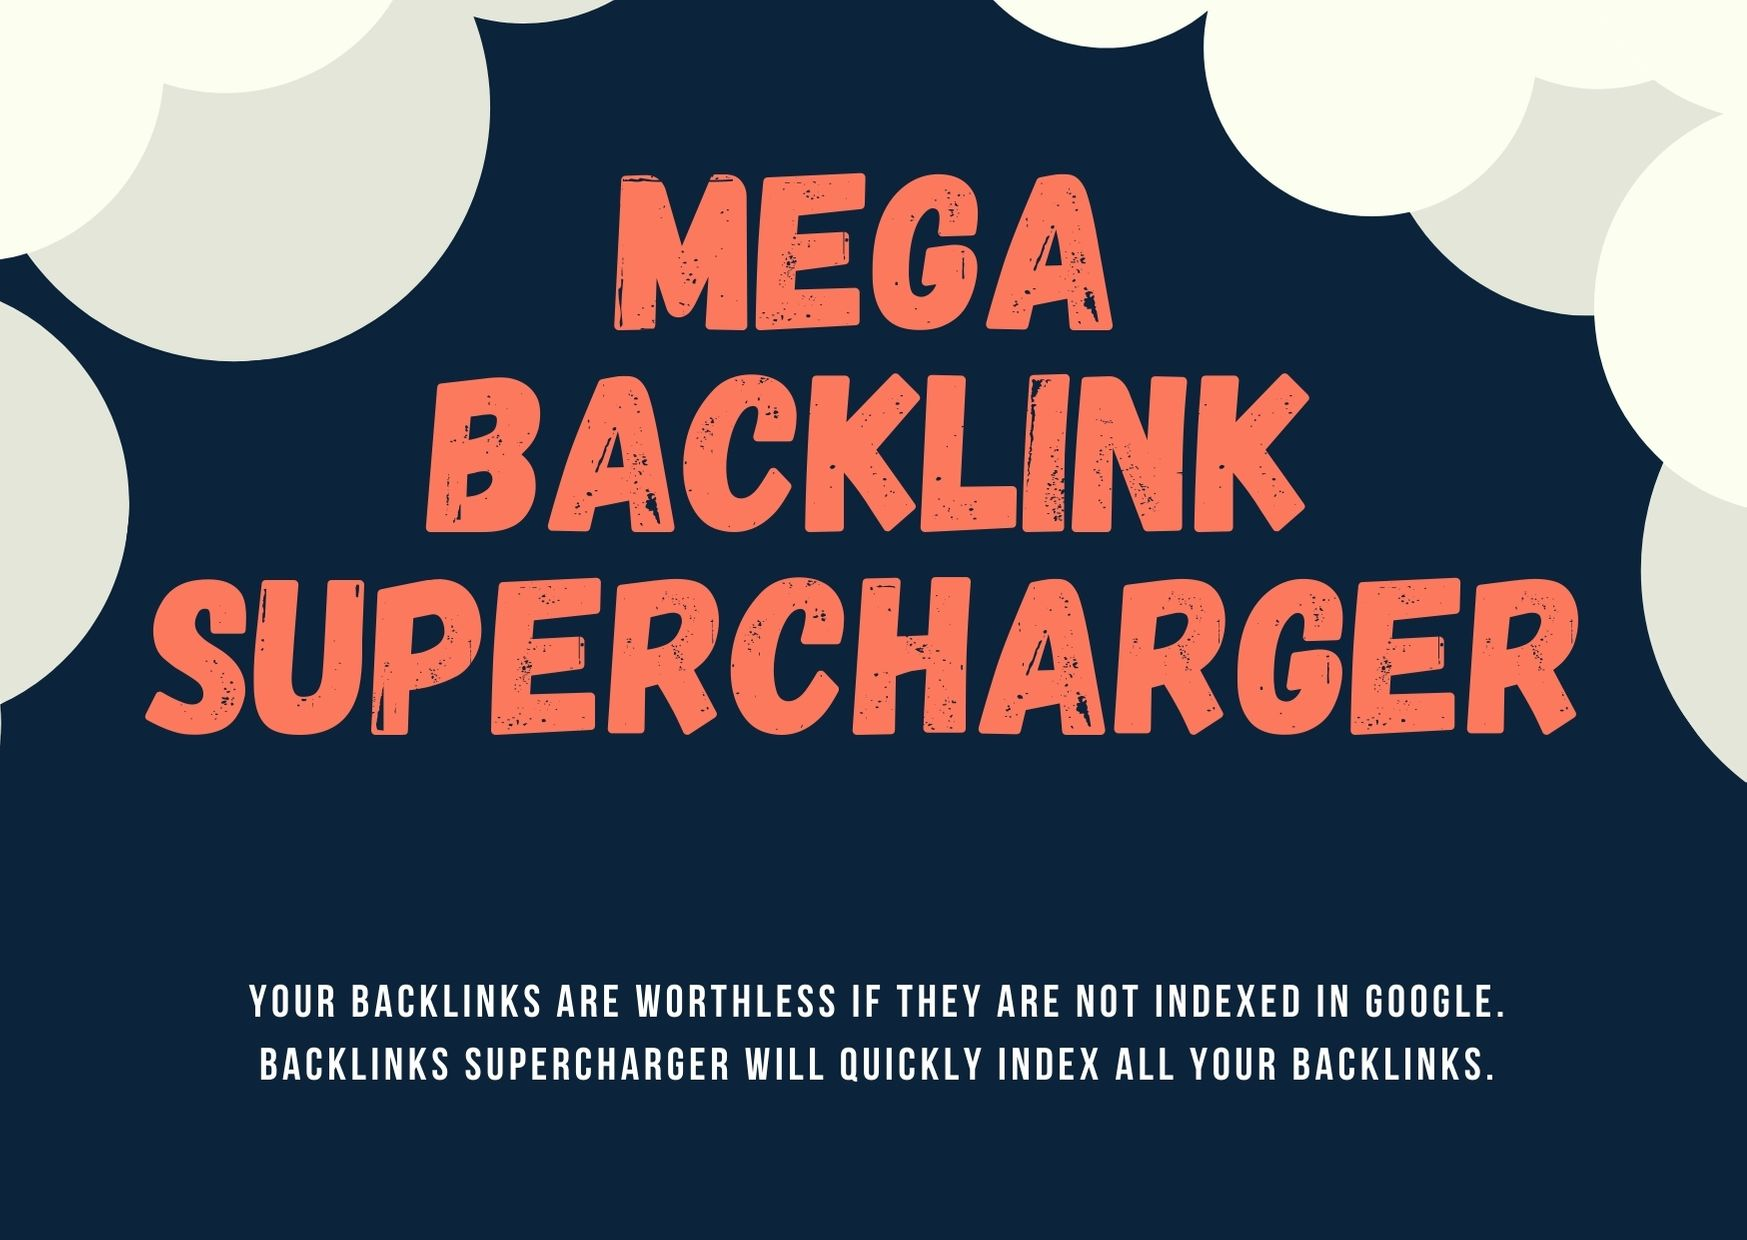 Backlink Supercharger-Mass Ping Up to 1000 URLs at once